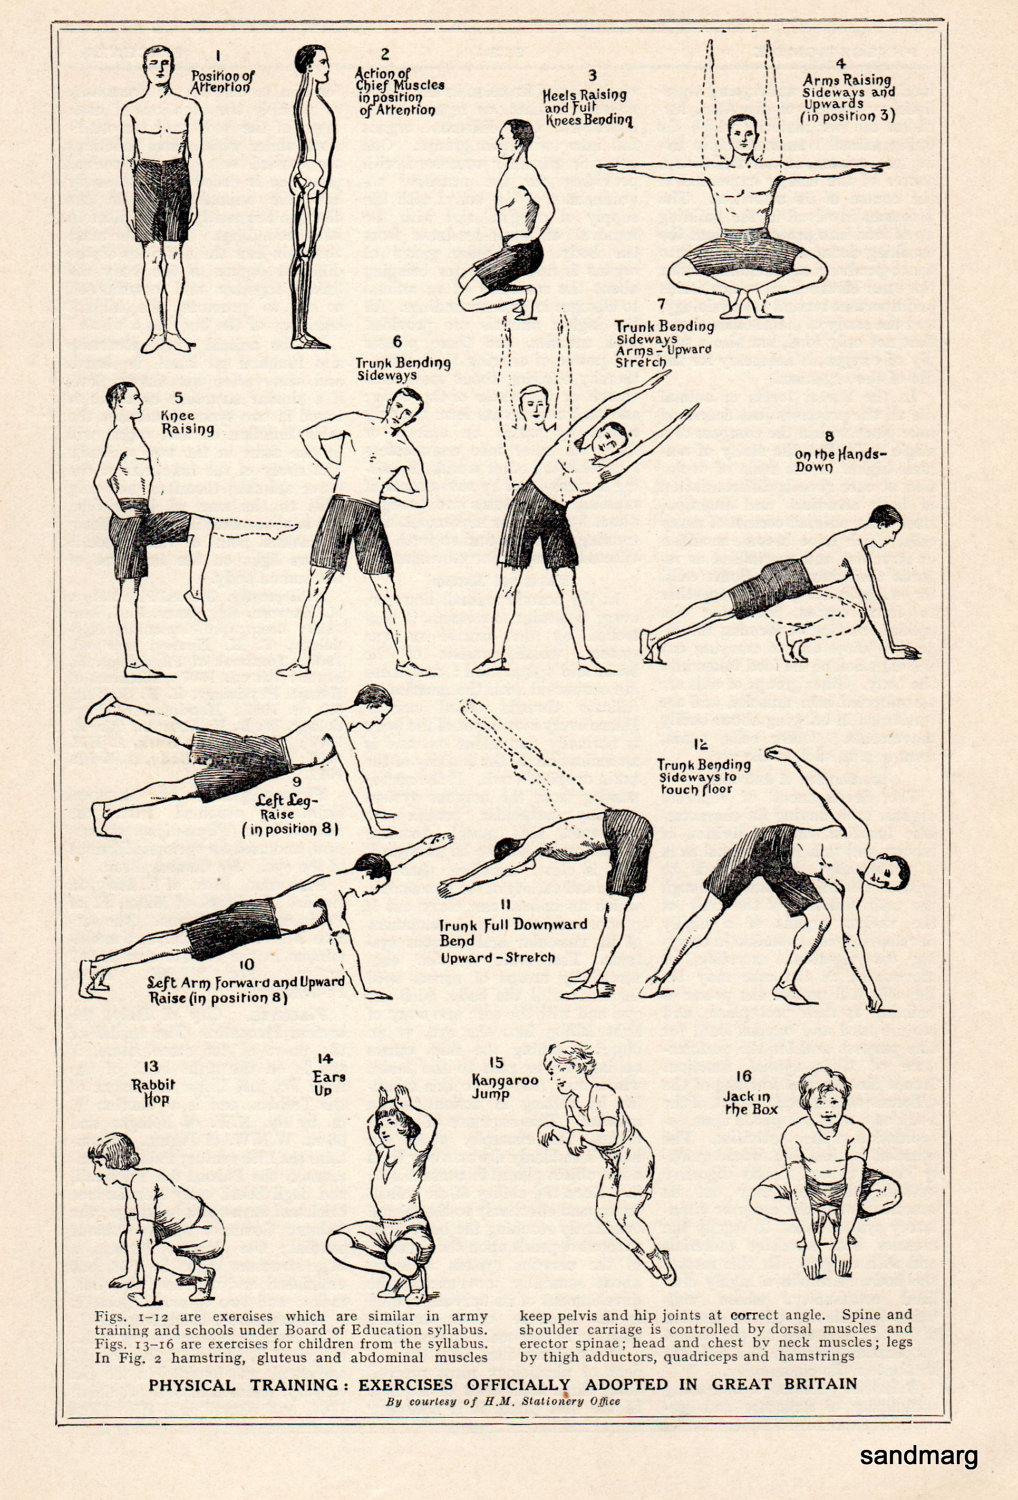 bodybuilding exercises chart for menfun and fitness chart exercises for good health by sandmarg jpg ansel adams wilderness 7 1600